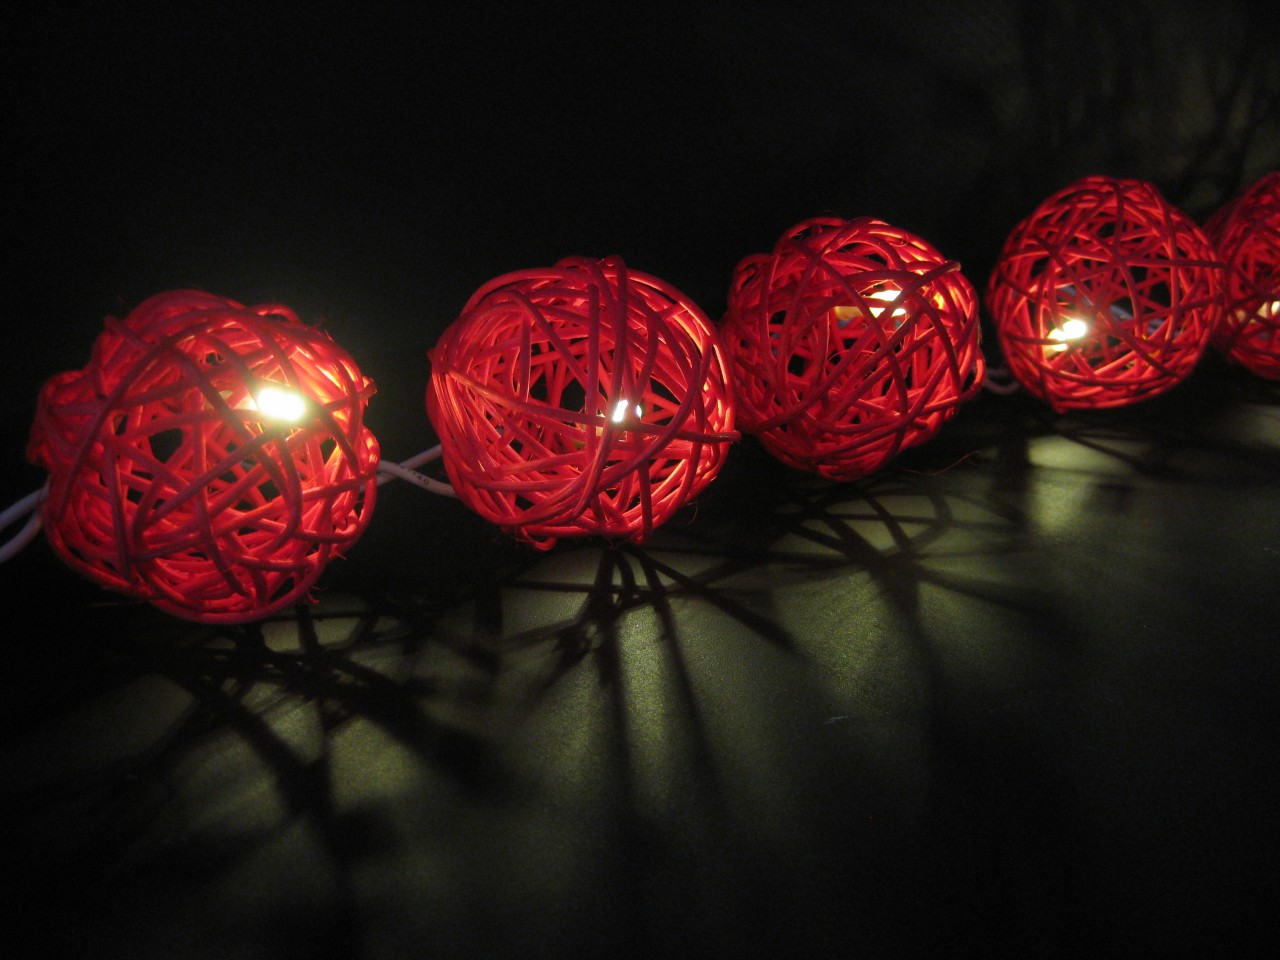 20 RED Wicker Rattan Ball BATTERY Operated LED String Fairy Lights Christmas NEW eBay